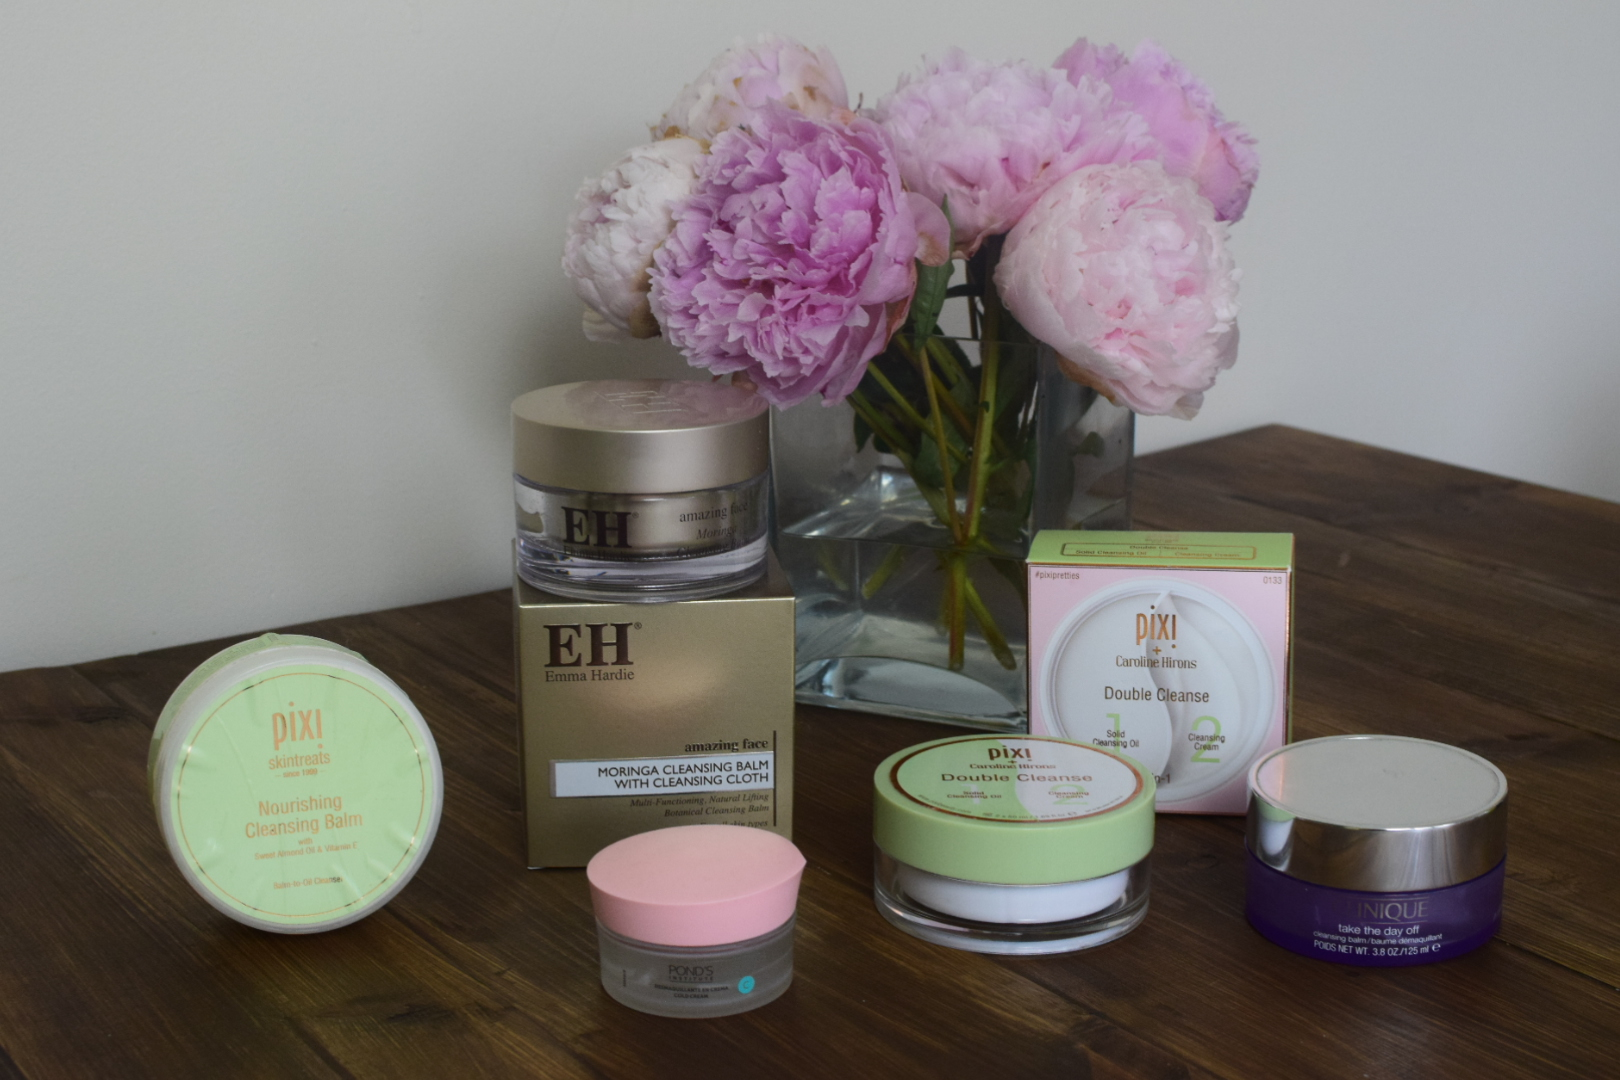 Balm Cleansers Emma Hardie Moringa Cleansing Balm, Clinque Take the day off, Pixi double cleanse, Ponds Cold Cream and Pixi Nourishing Cleansing Balm.